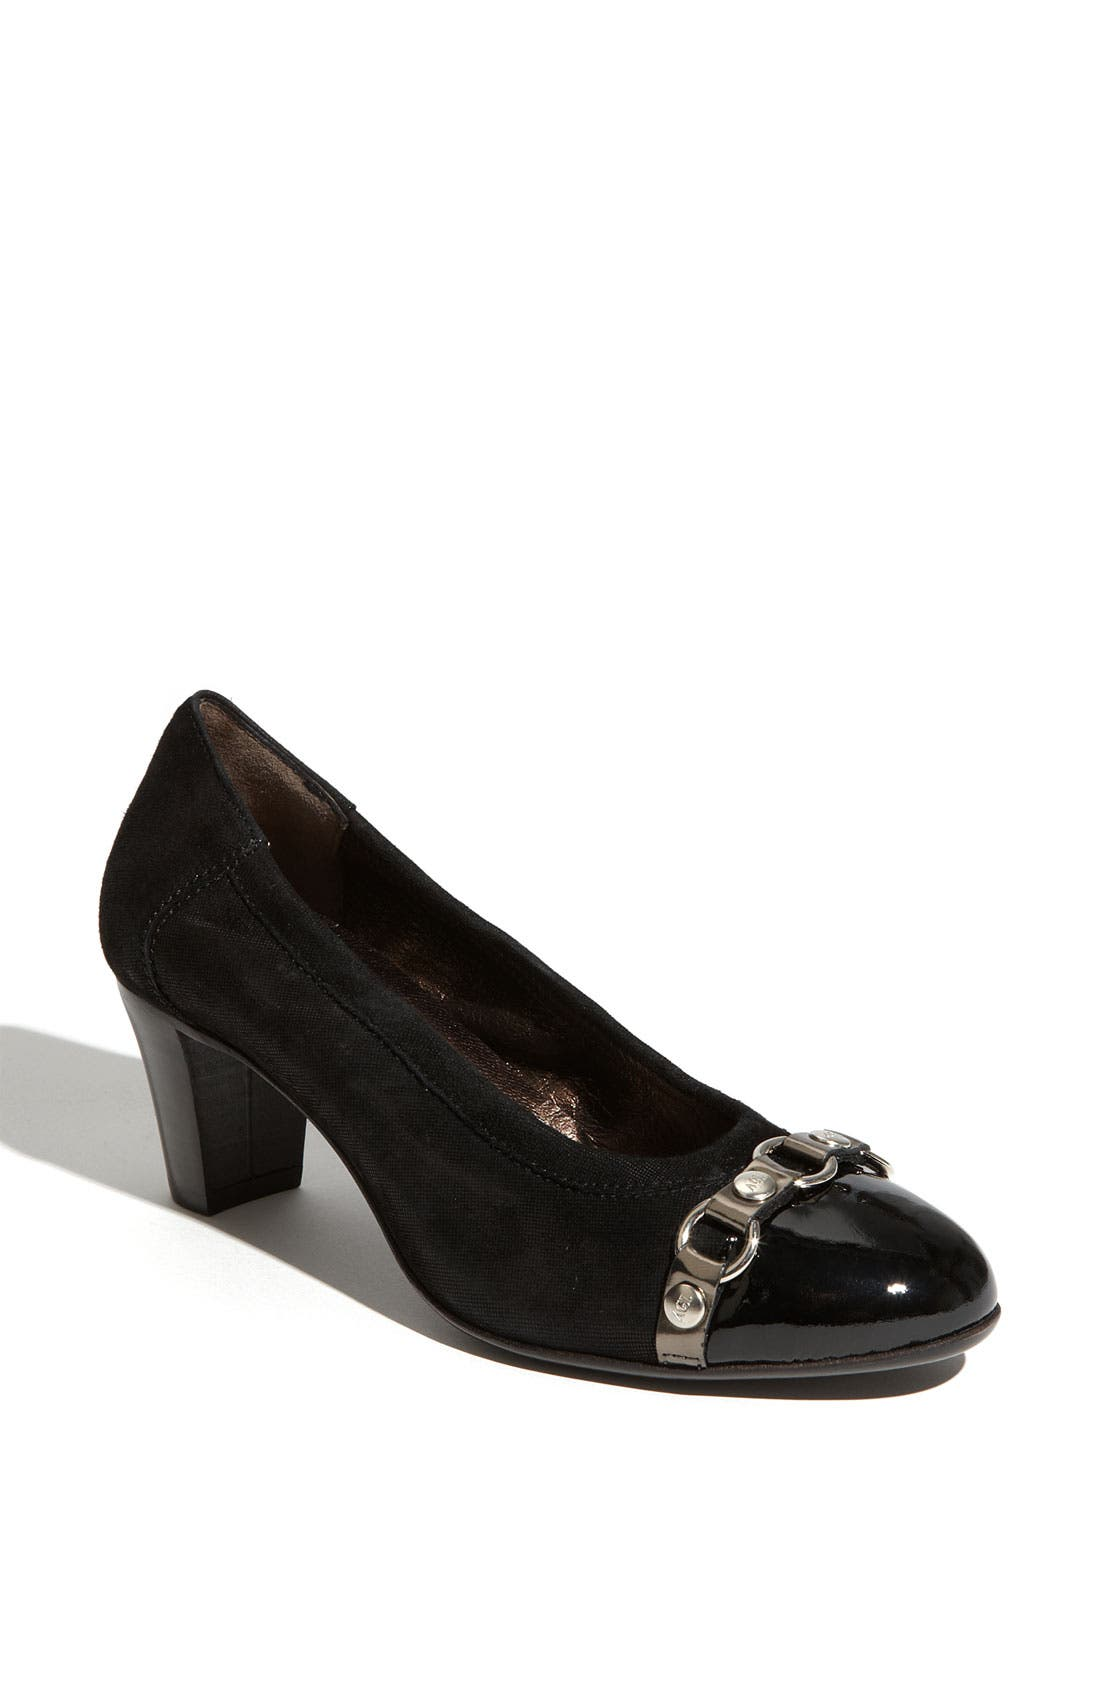 Alternate Image 1 Selected - Attilio Giusti Leombruni Belt Pump